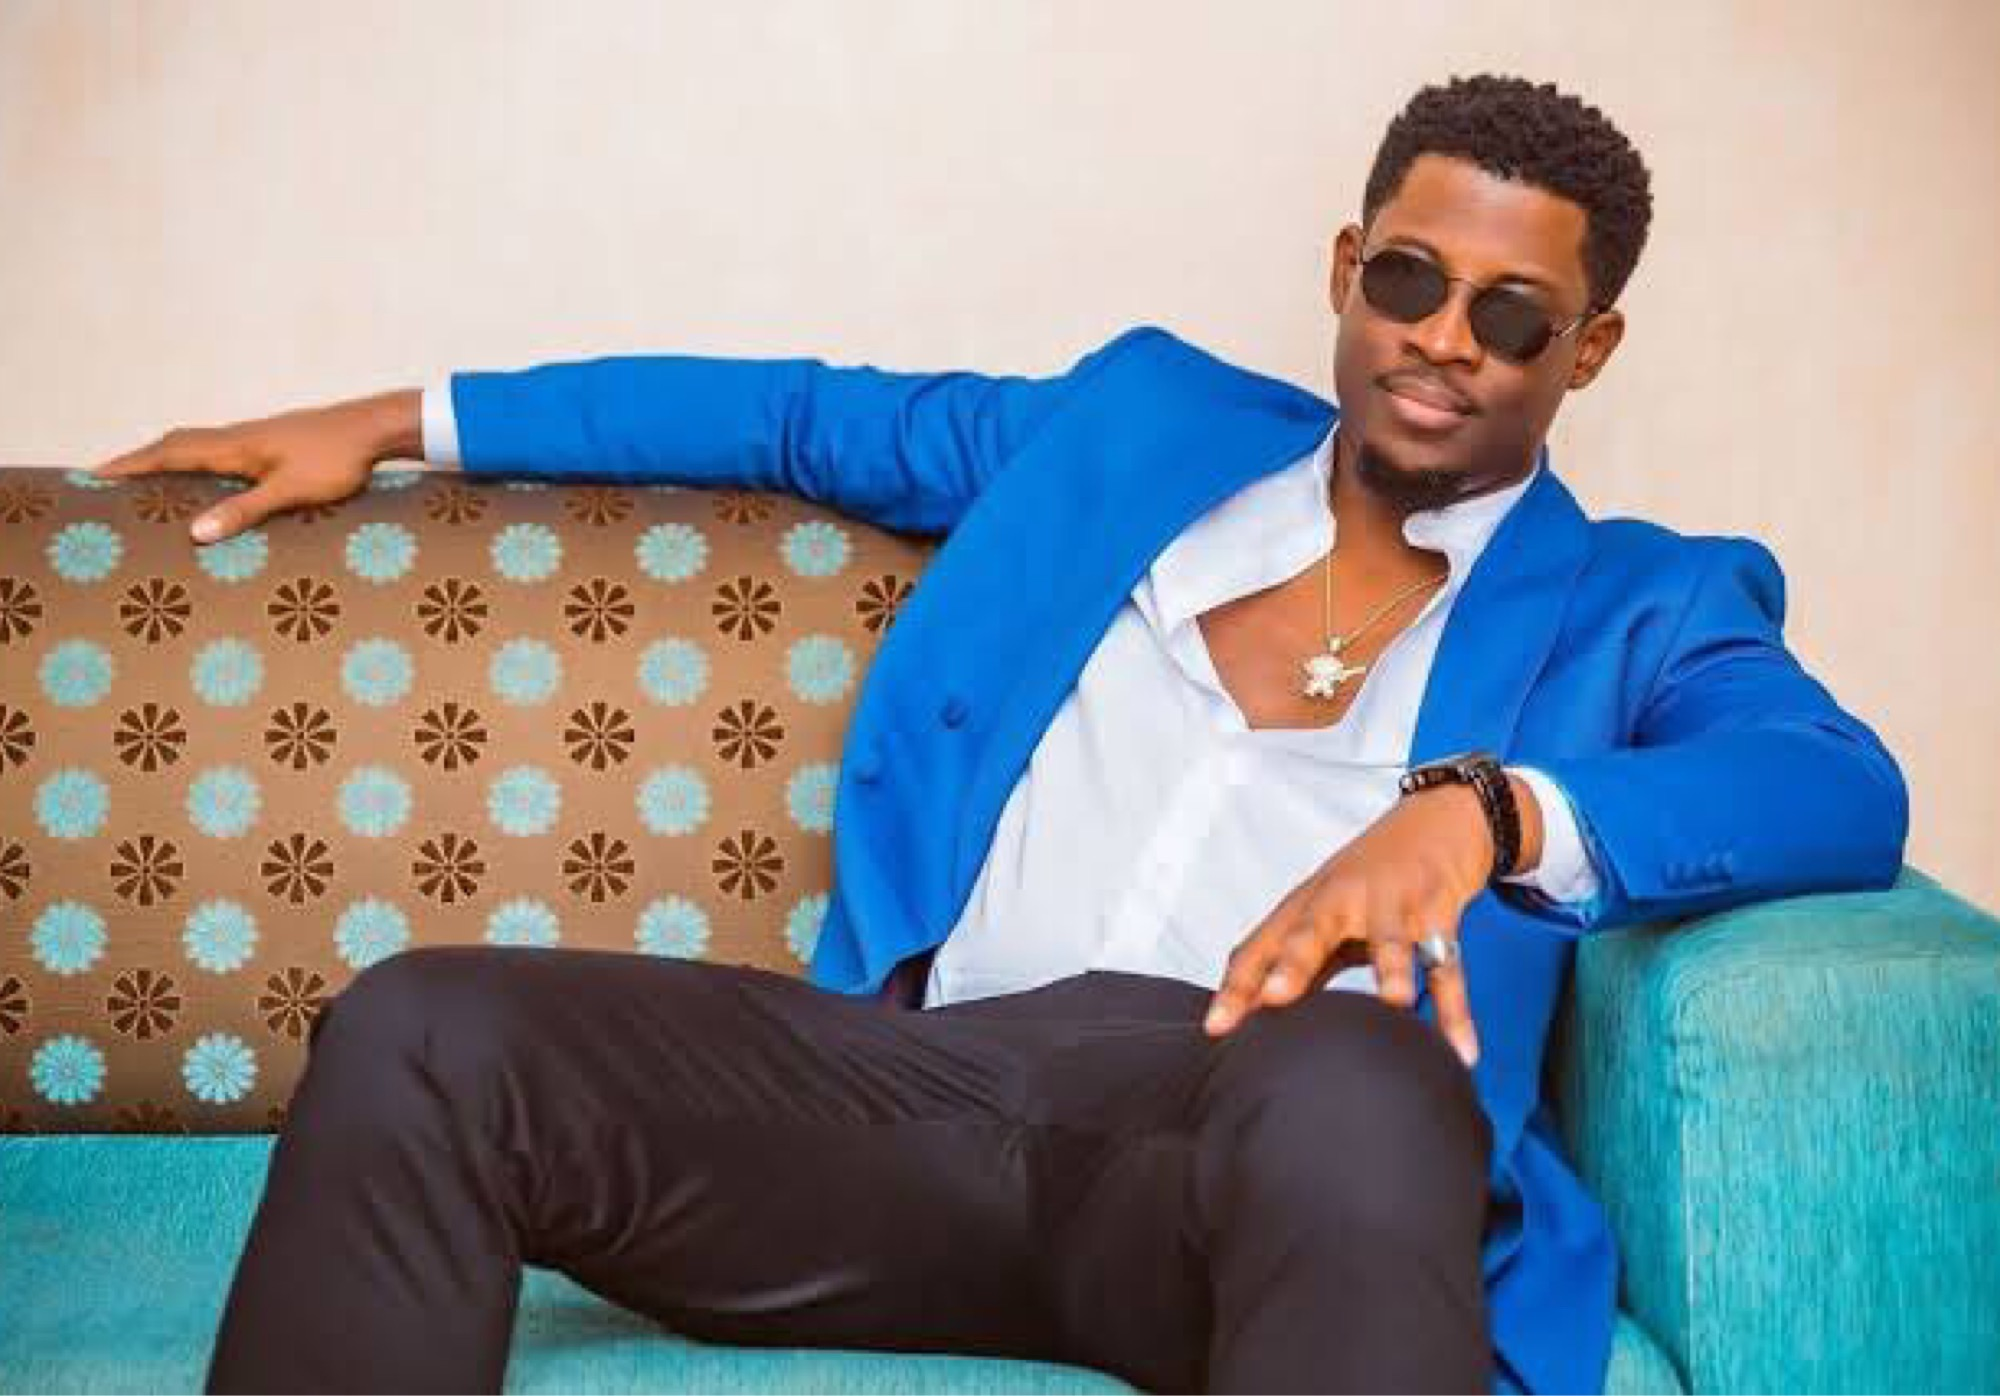 'Hit Your Head Against The Wall', Seyi Awolowo Tells Troll Who Asked Him To 'Hit The Gym'